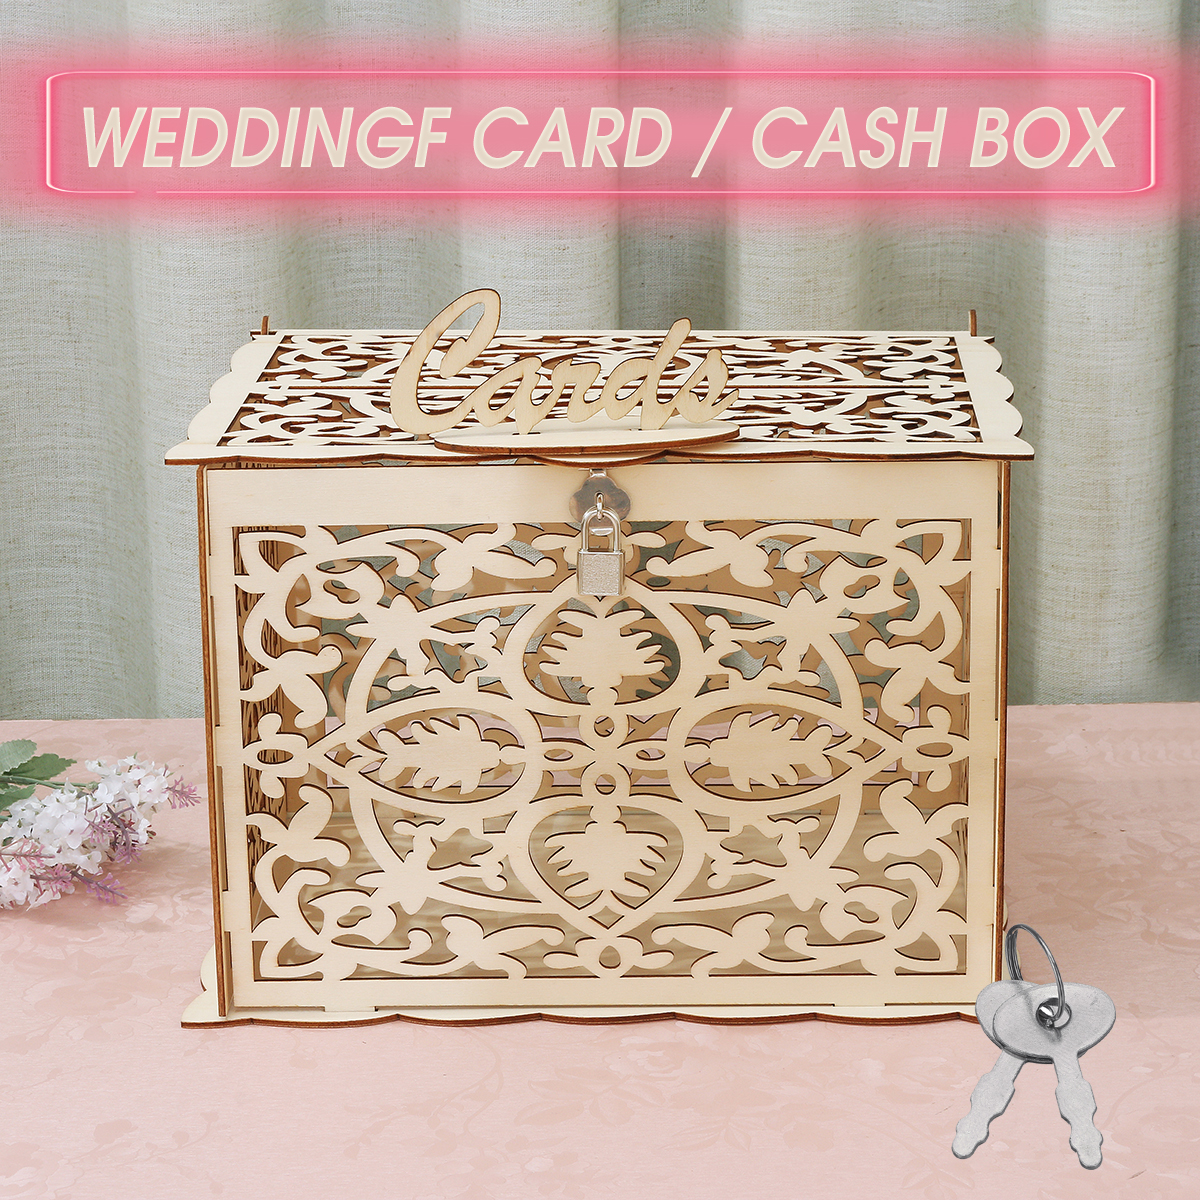 Diy Wooden Box Cash Money Wedding Gift Advice Card With Lock Party Piggy Bank Box Wedding Decor Walmart Canada,Pubg Wallpaper Hd 4k Black And White